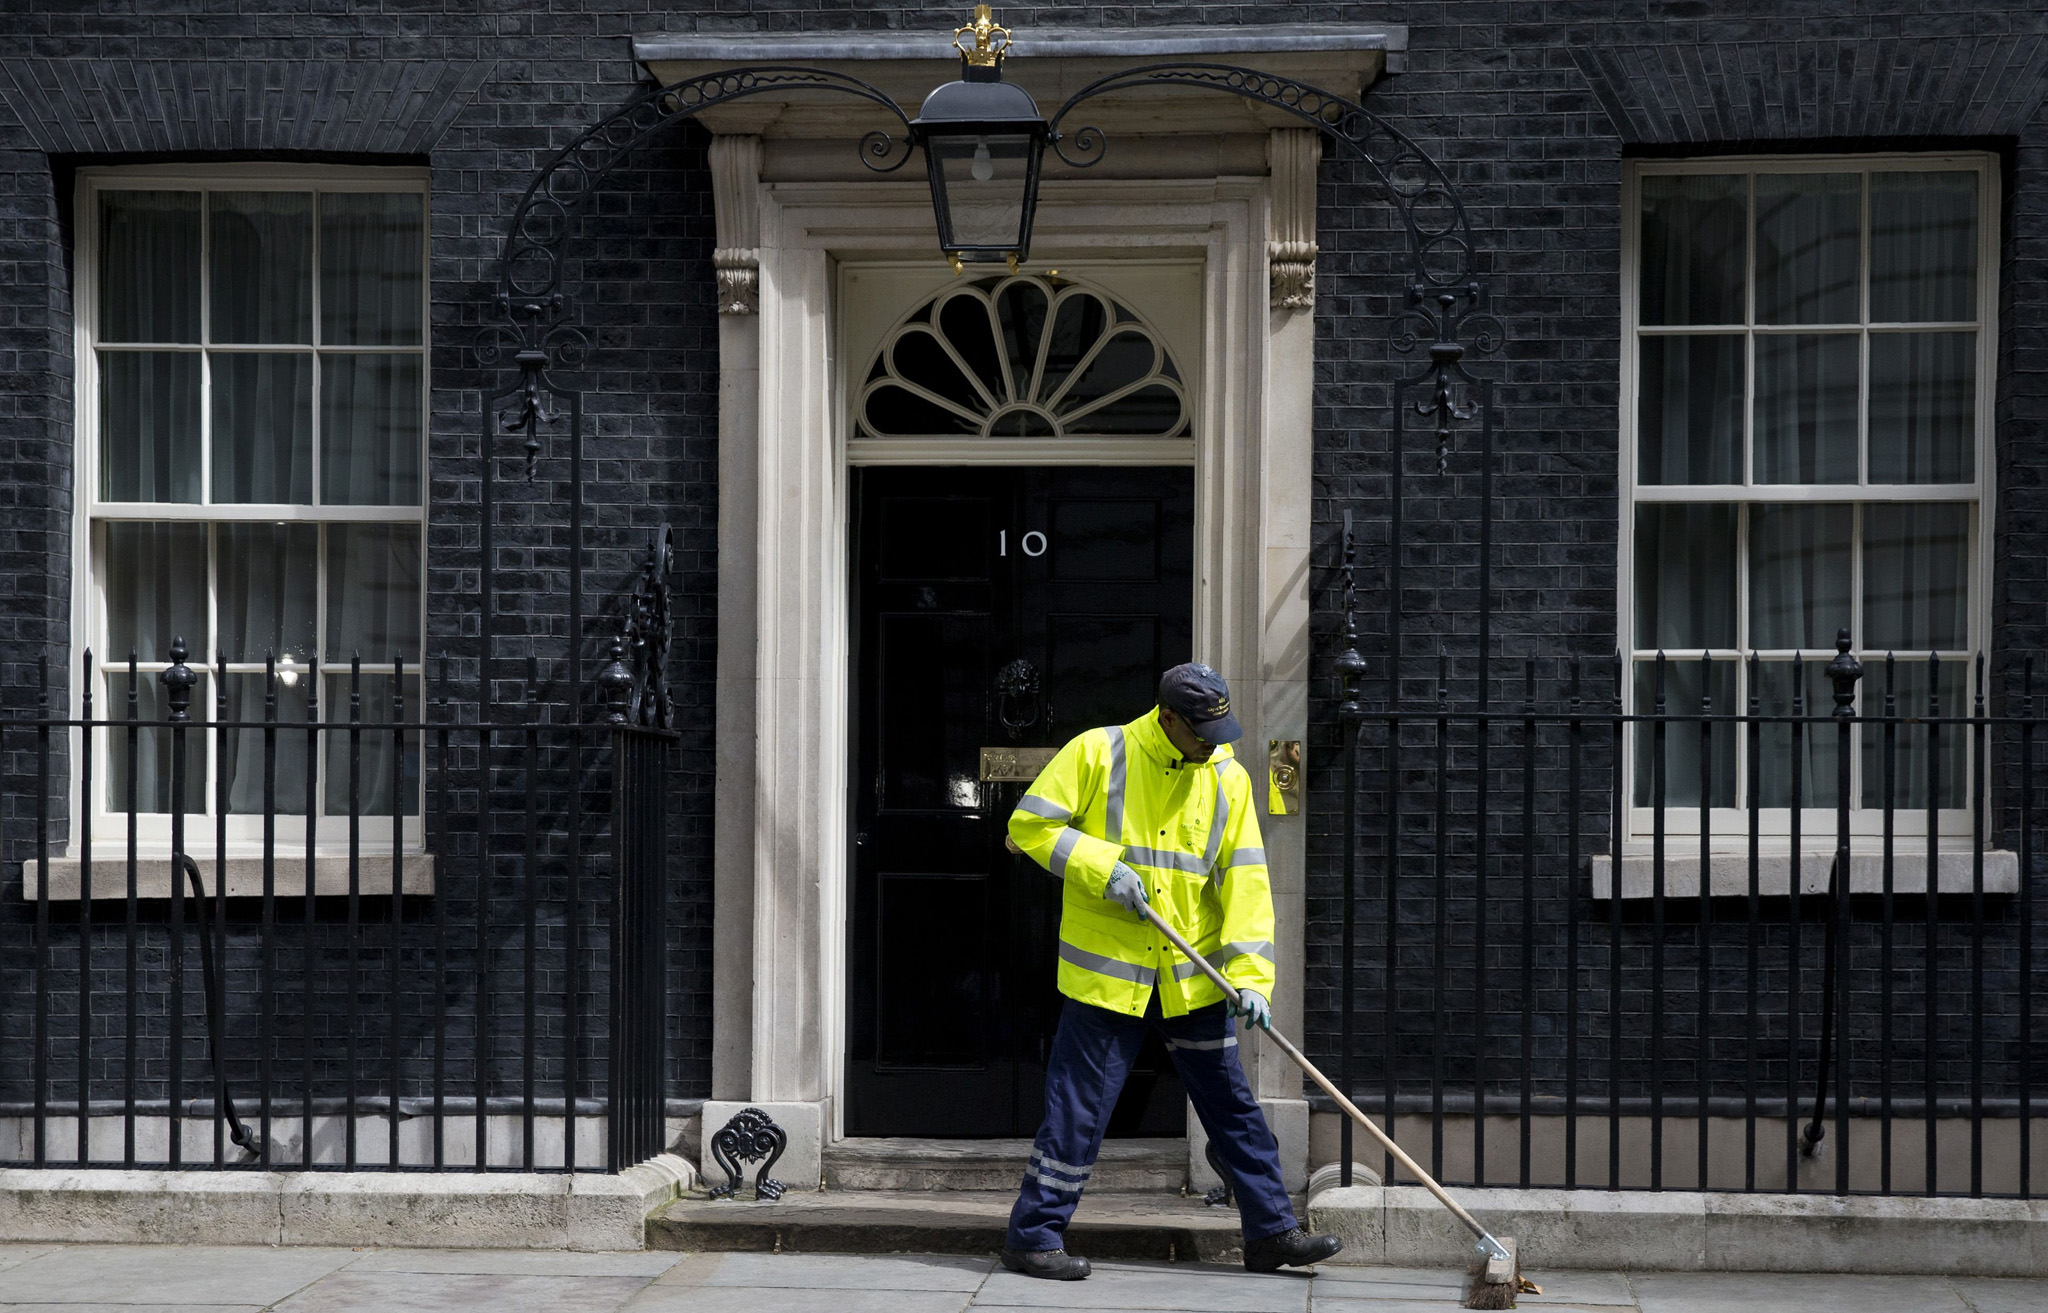 A City of Westminster worker sweeps the pavement outside 10 Downing Street in central London on June 25, 2016. The result of Britain's June 23 referendum vote to leave the European Union (EU) has pitted parents against children, cities against rural areas, north against south and university graduates against those with fewer qualifications. London, Scotland and Northern Ireland voted to remain in the EU but Wales and large swathes of England, particularly former industrial hubs in the north with many disaffected workers, backed a Brexit. / AFP PHOTO / JUSTIN TALLISJUSTIN TALLIS/AFP/Getty Images